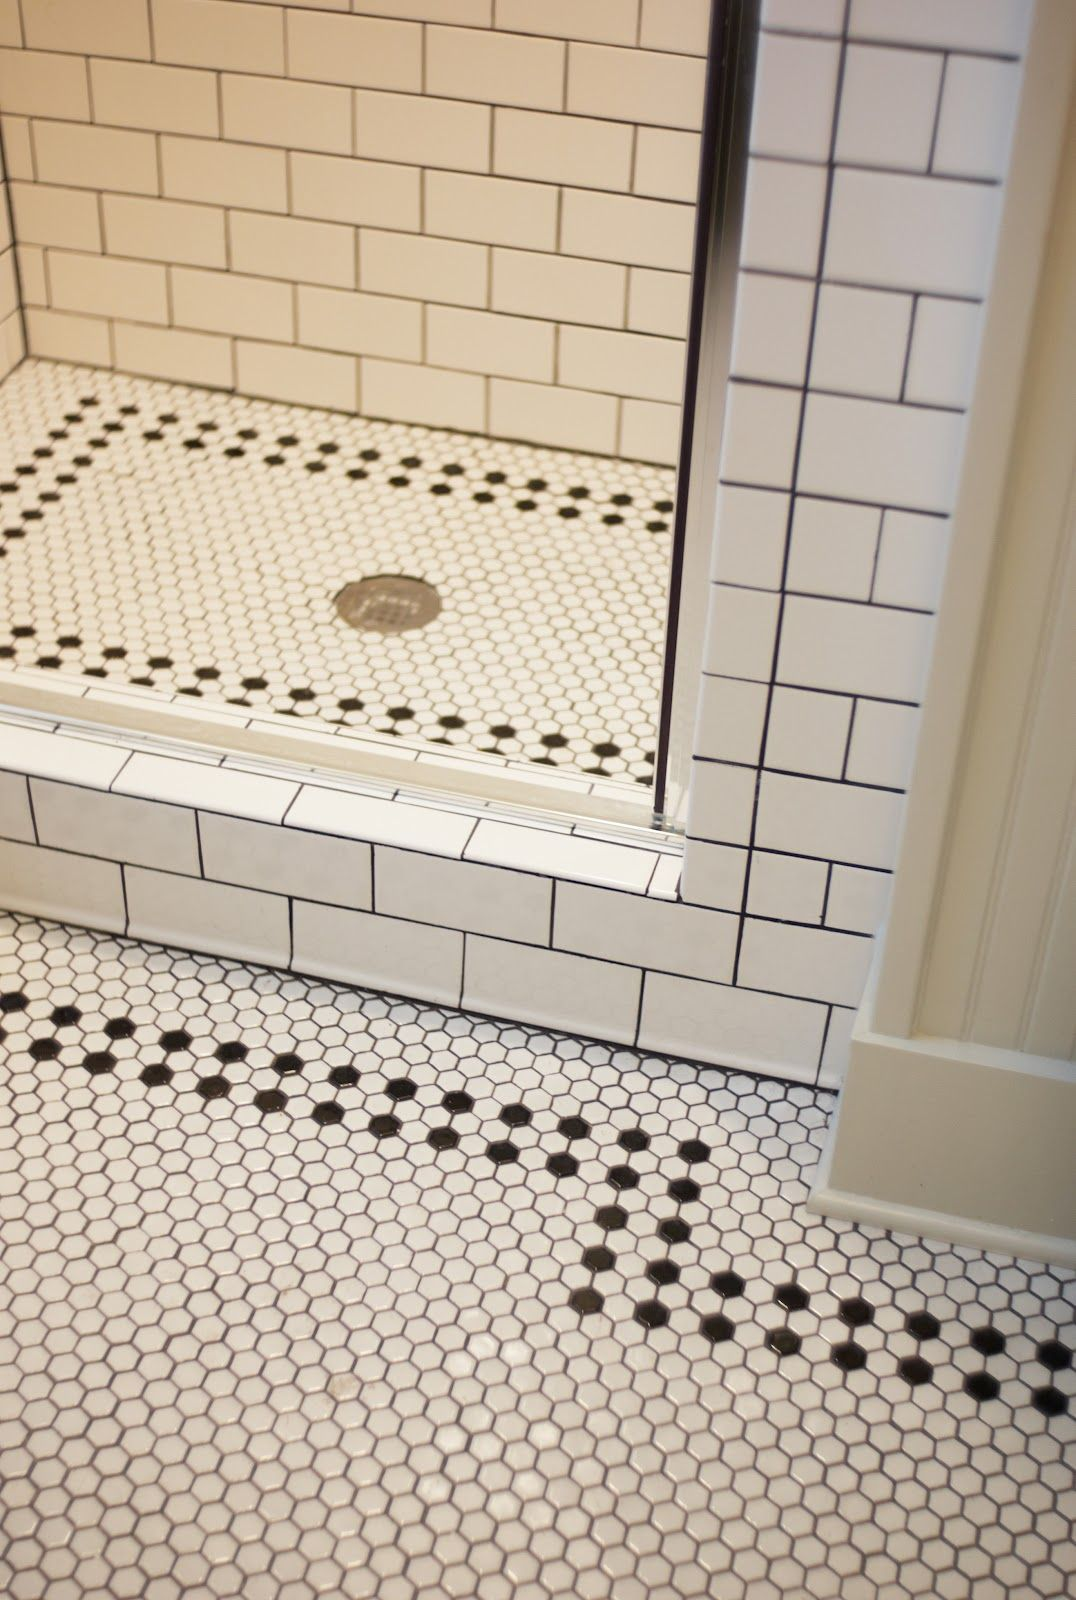 Charming Average Price Of Replacing A Bathroom Tiny Cleaning Bathroom With Bleach And Water Regular Briggs Bathtub Installation Instructions Good Paint For Bathroom Ceiling Old Delta Bathtub Faucet Removal YellowBath Clothes Museum Image Of Wood Kitchen Floor Tile Design Ideas. Mohawk Porcelain ..